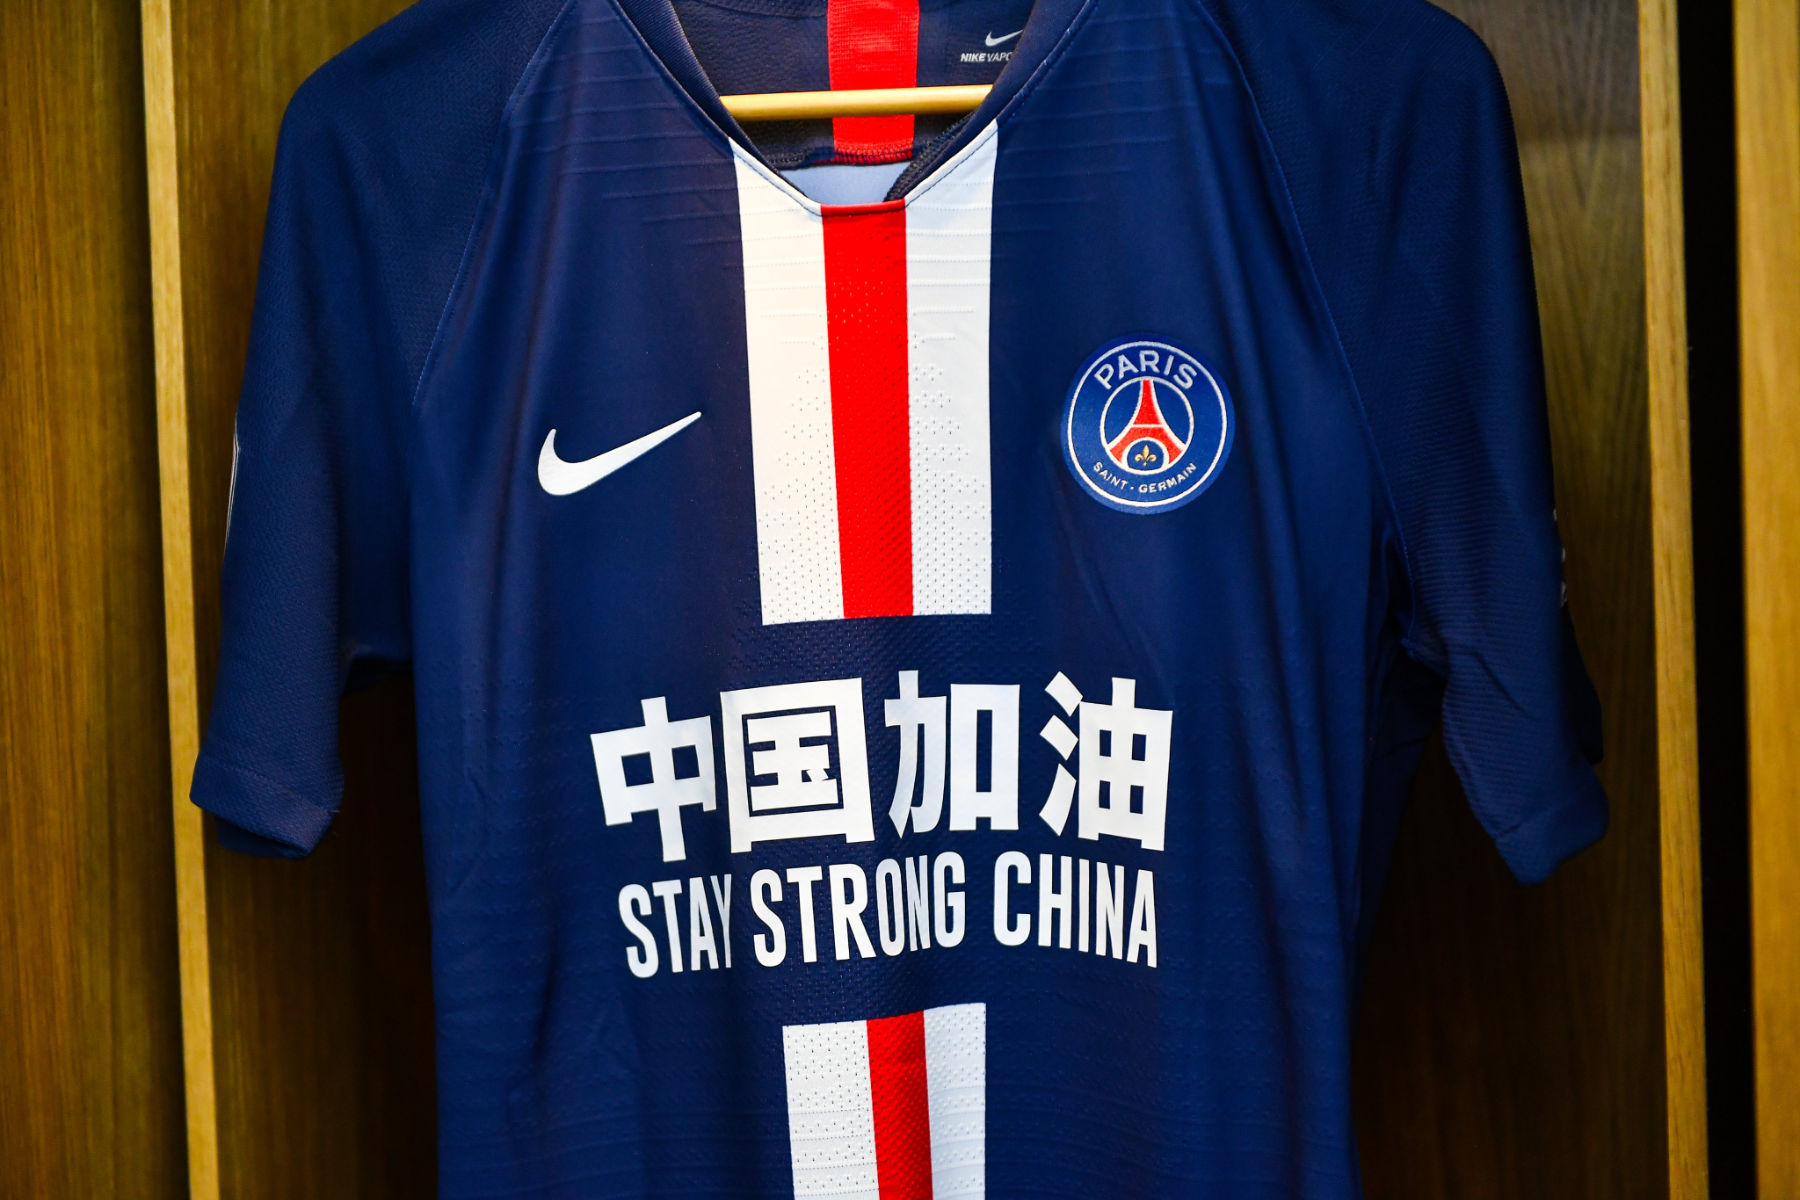 Psg Replaces Jersey Sponsor With Message To China In Match Against Bordeaux Psg Talk